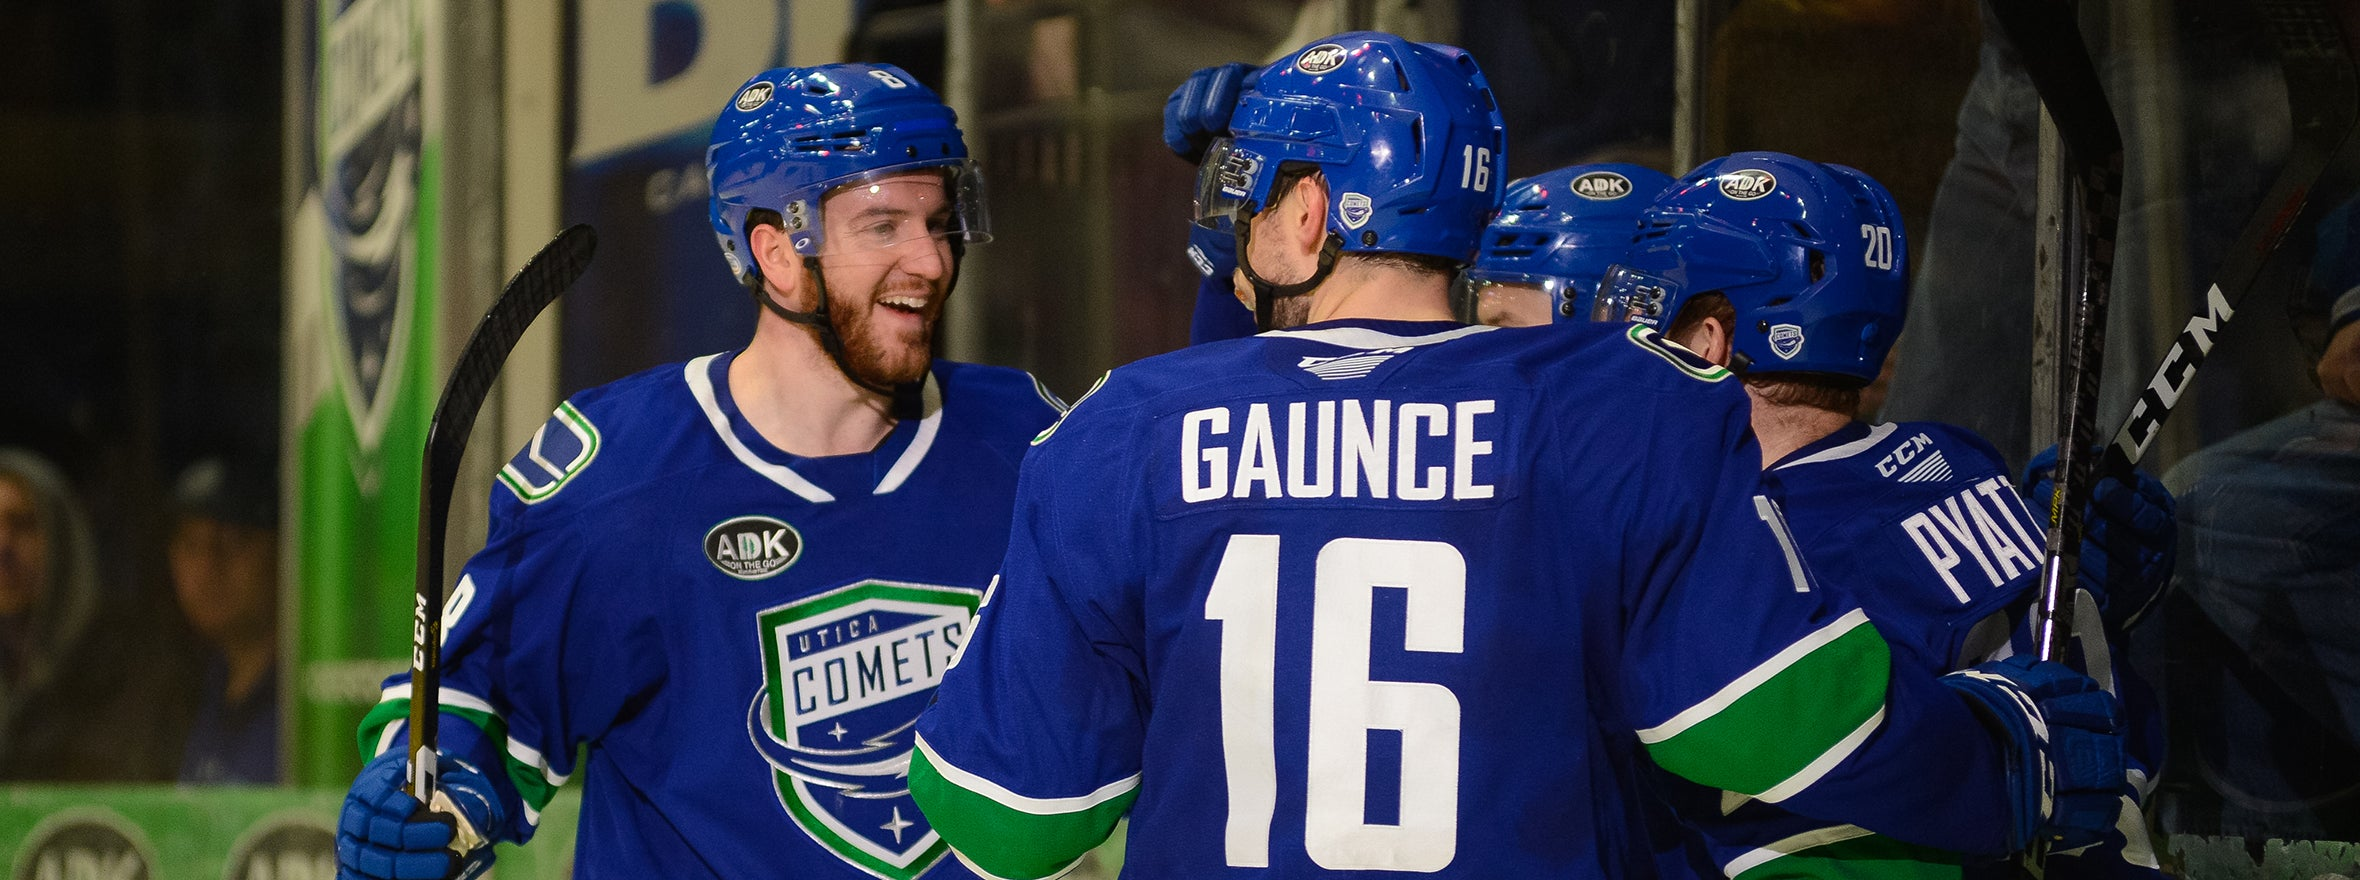 COMETS SNAP WINLESS SKID WITH SHOOTOUT WIN